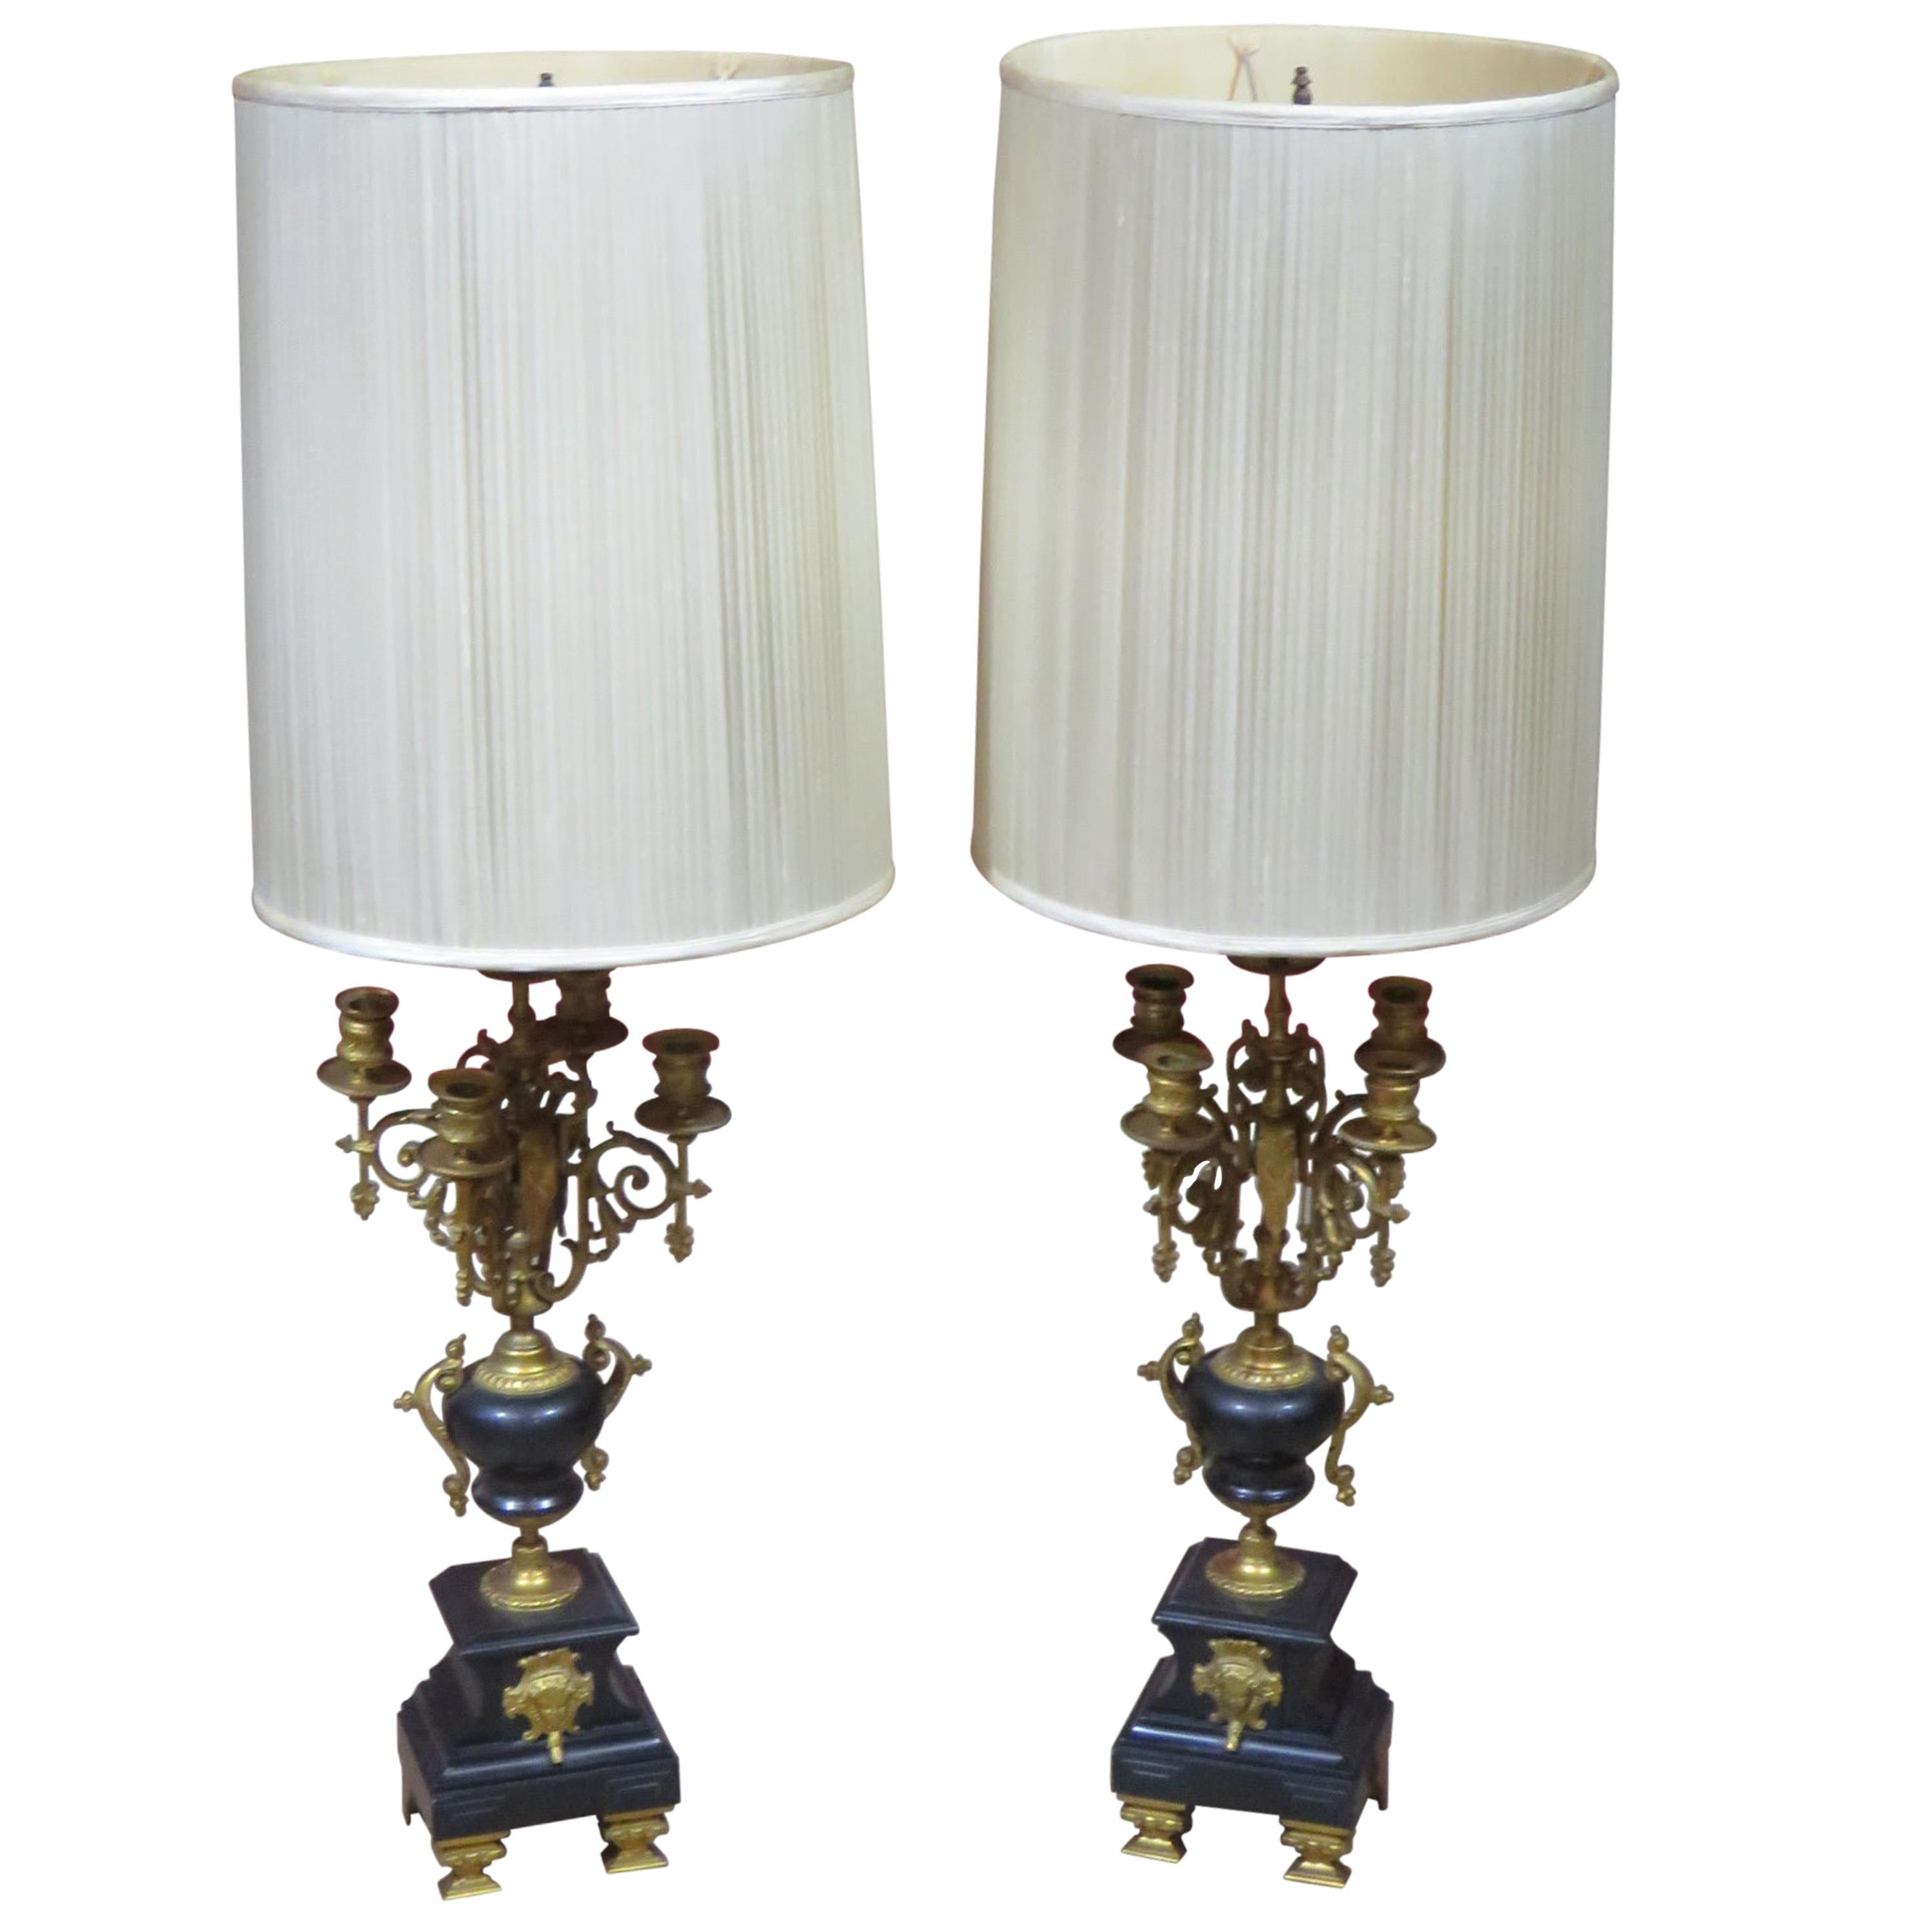 Pair of Bronze and Marble Neoclassical Style Candelabra Lamps